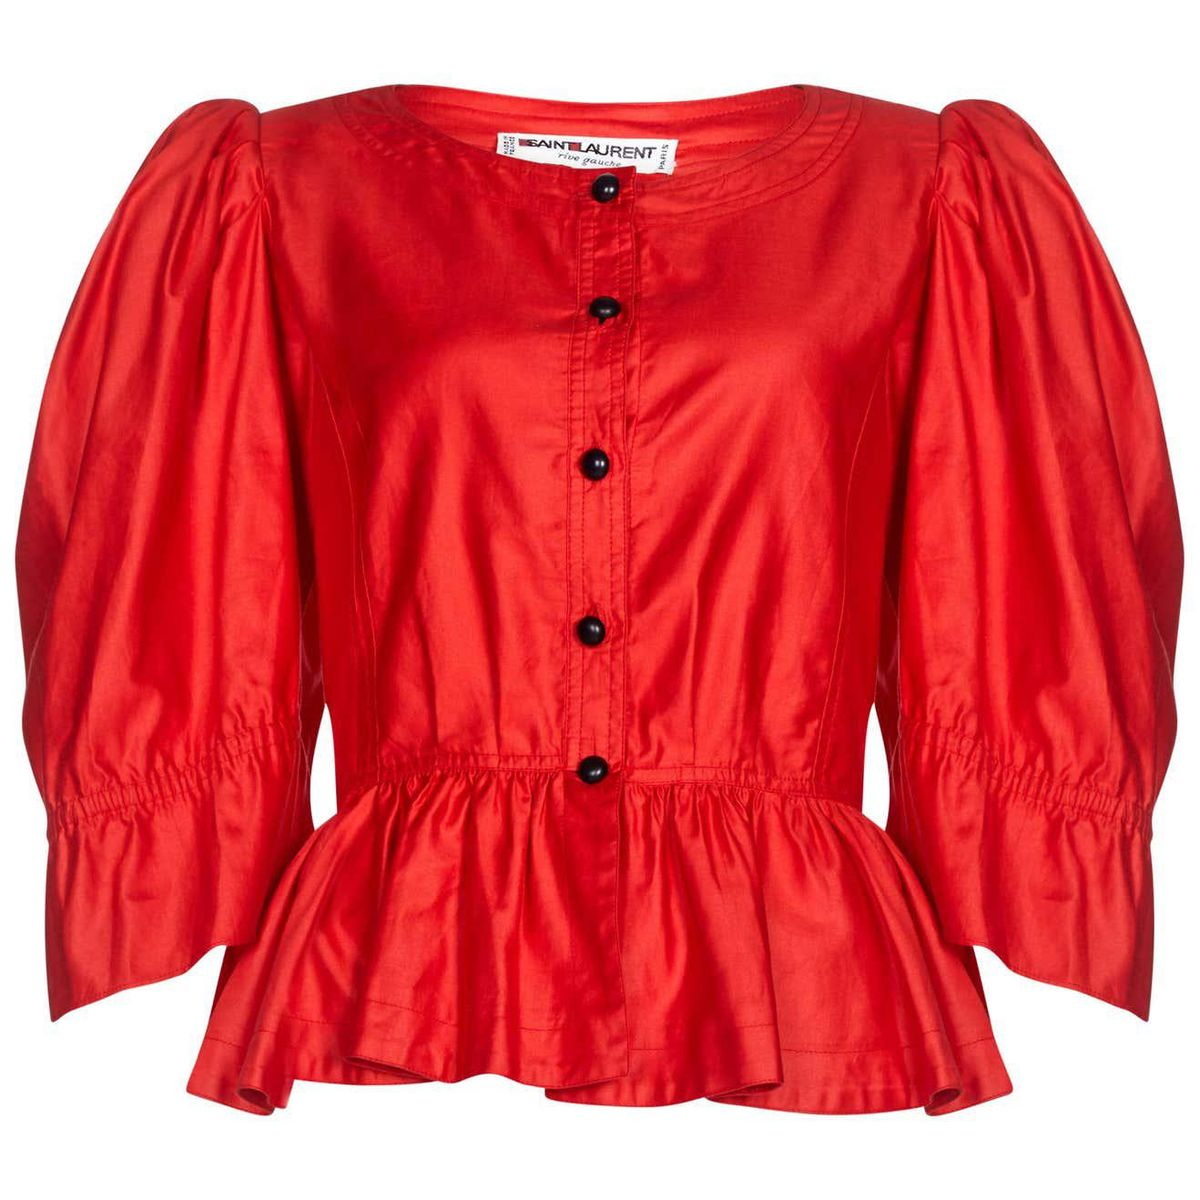 yves saint laurent 1970s red cotton bell sleeve blouse